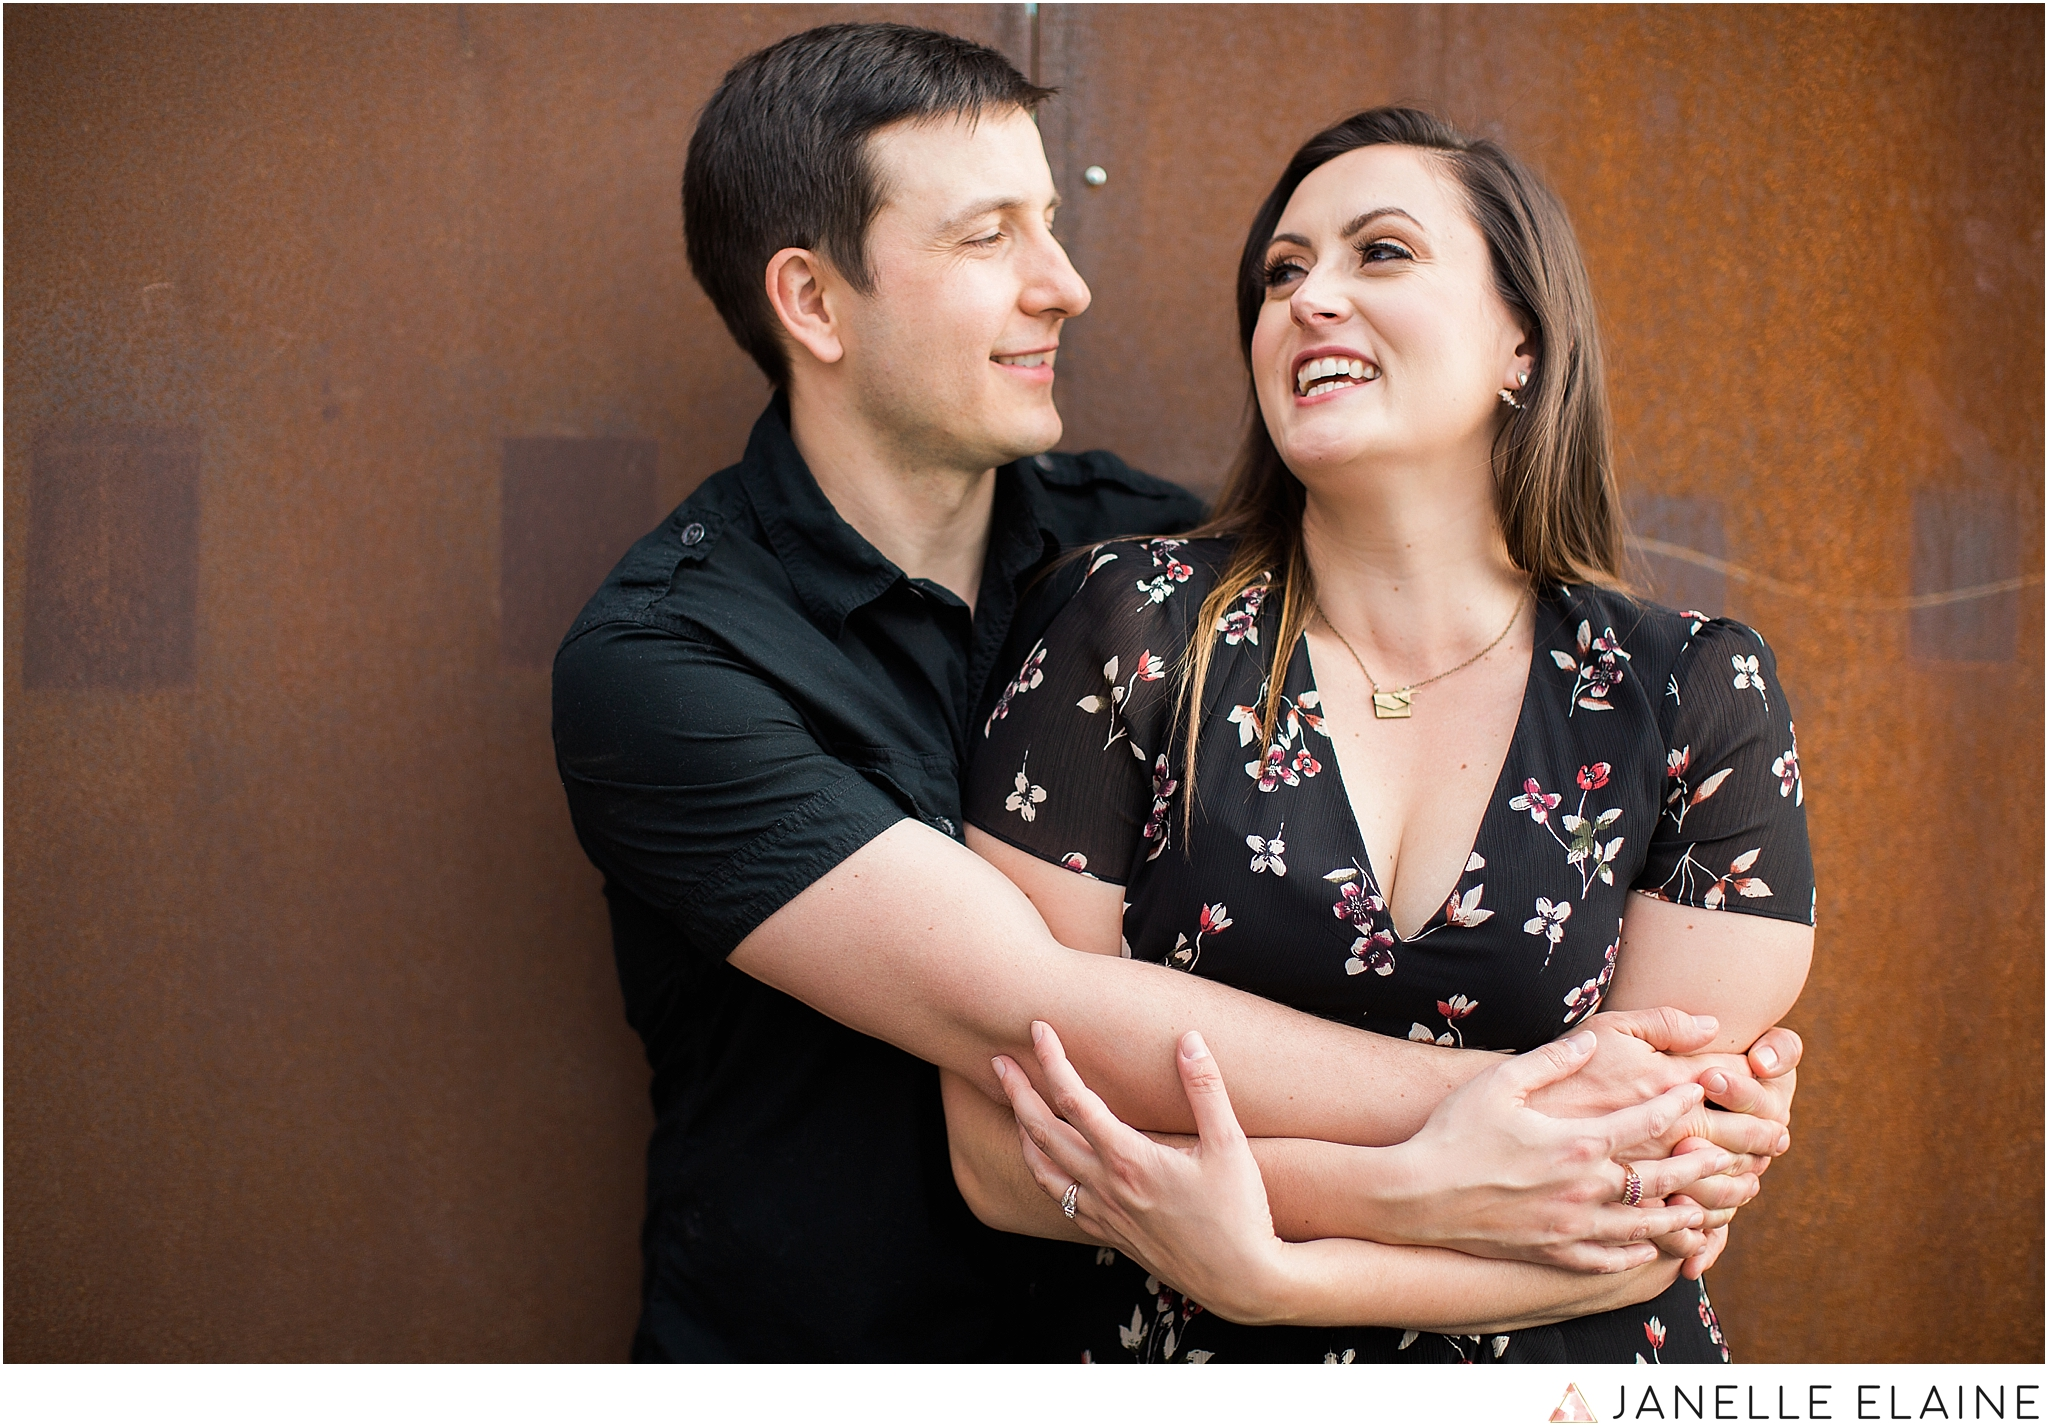 karen ethan-georgetown engagement photos-seattle-janelle elaine photography-27.jpg